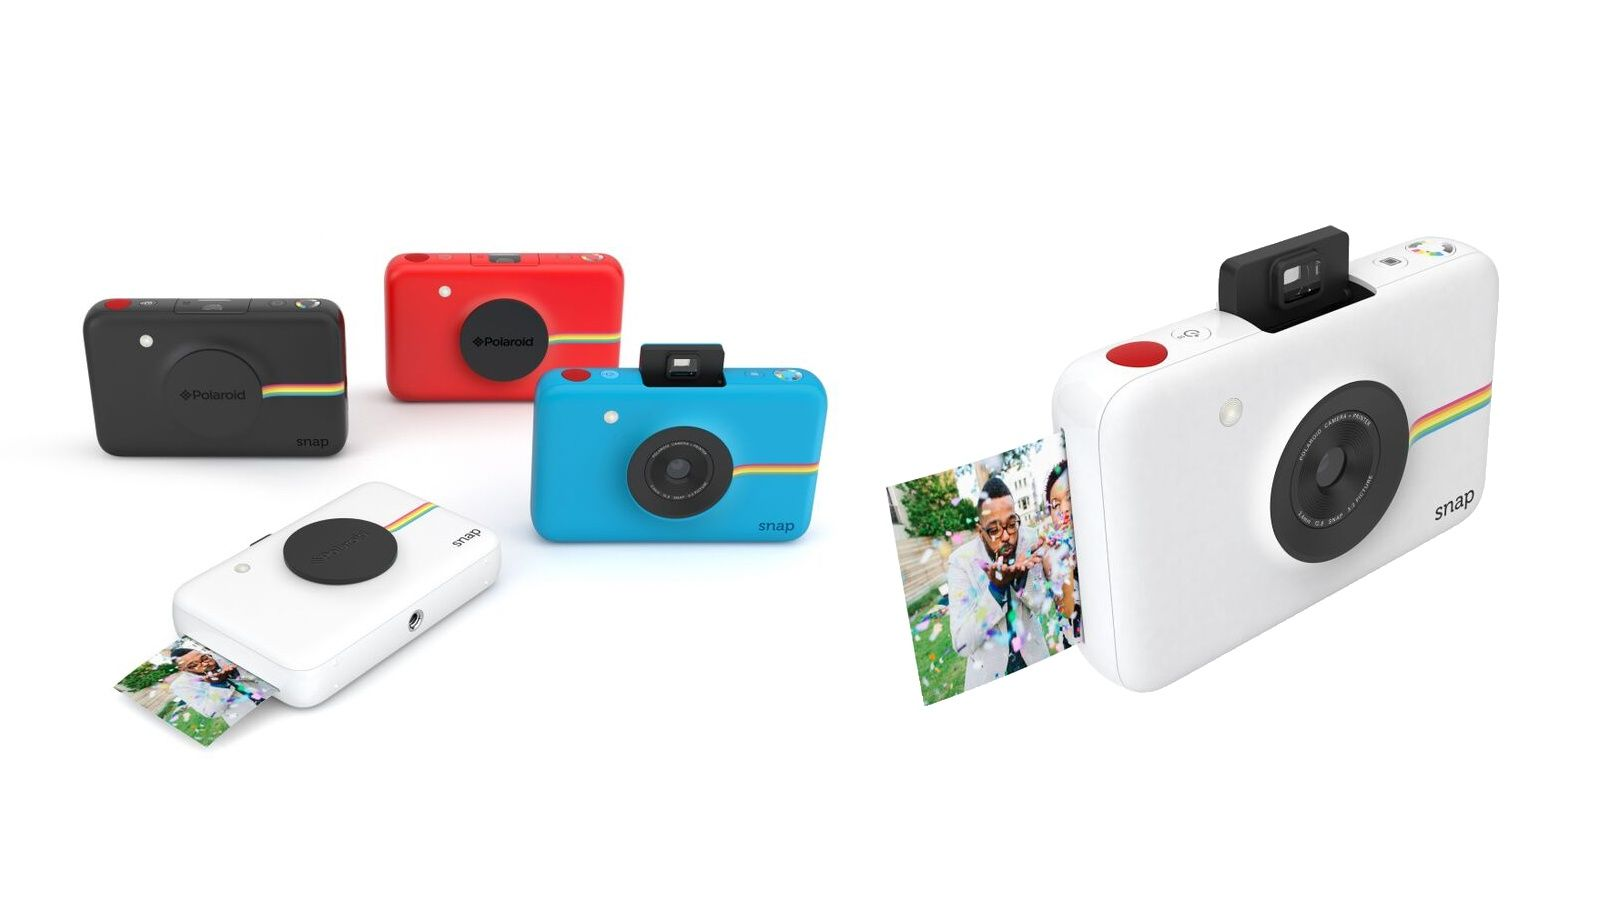 Pocket Size Polaroid Spits Out Instant Prints Polaroid Snap Polaroid Instant Camera Instant Digital Camera